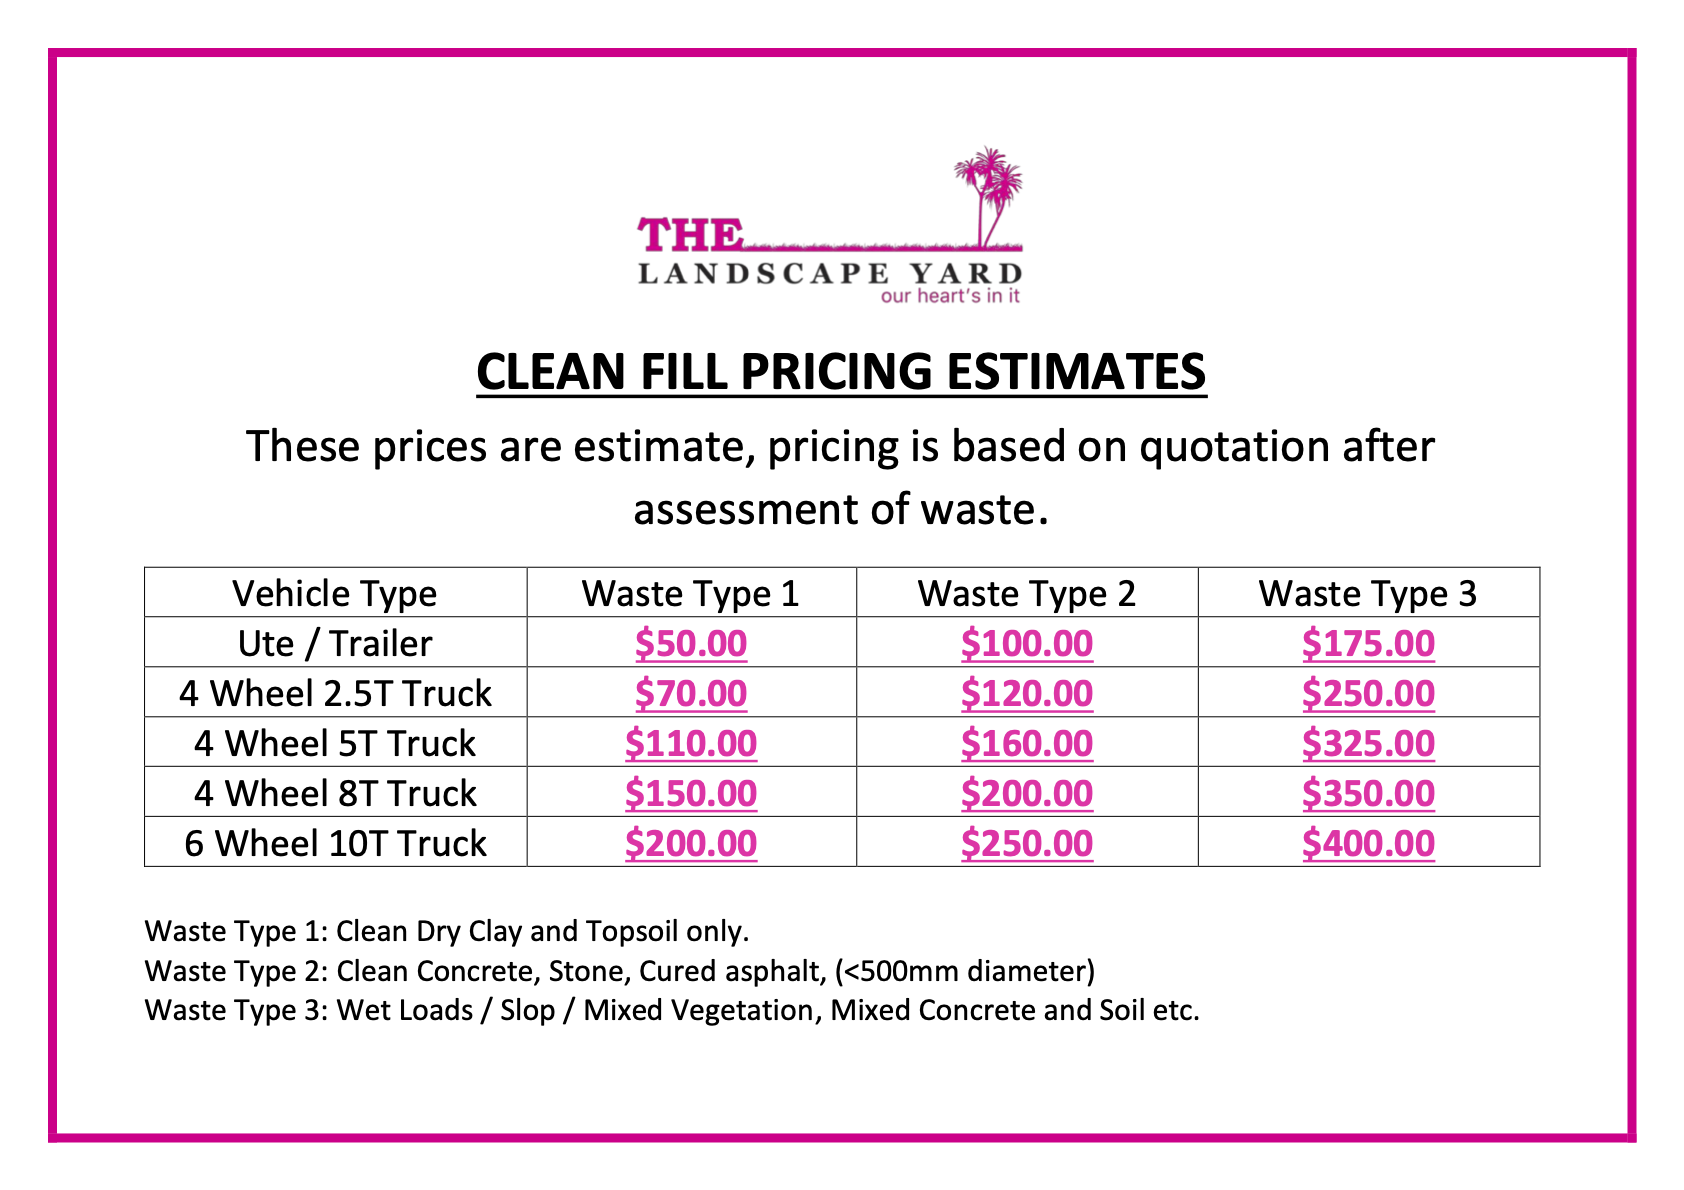 Clean Fill Pricing updated March 2021